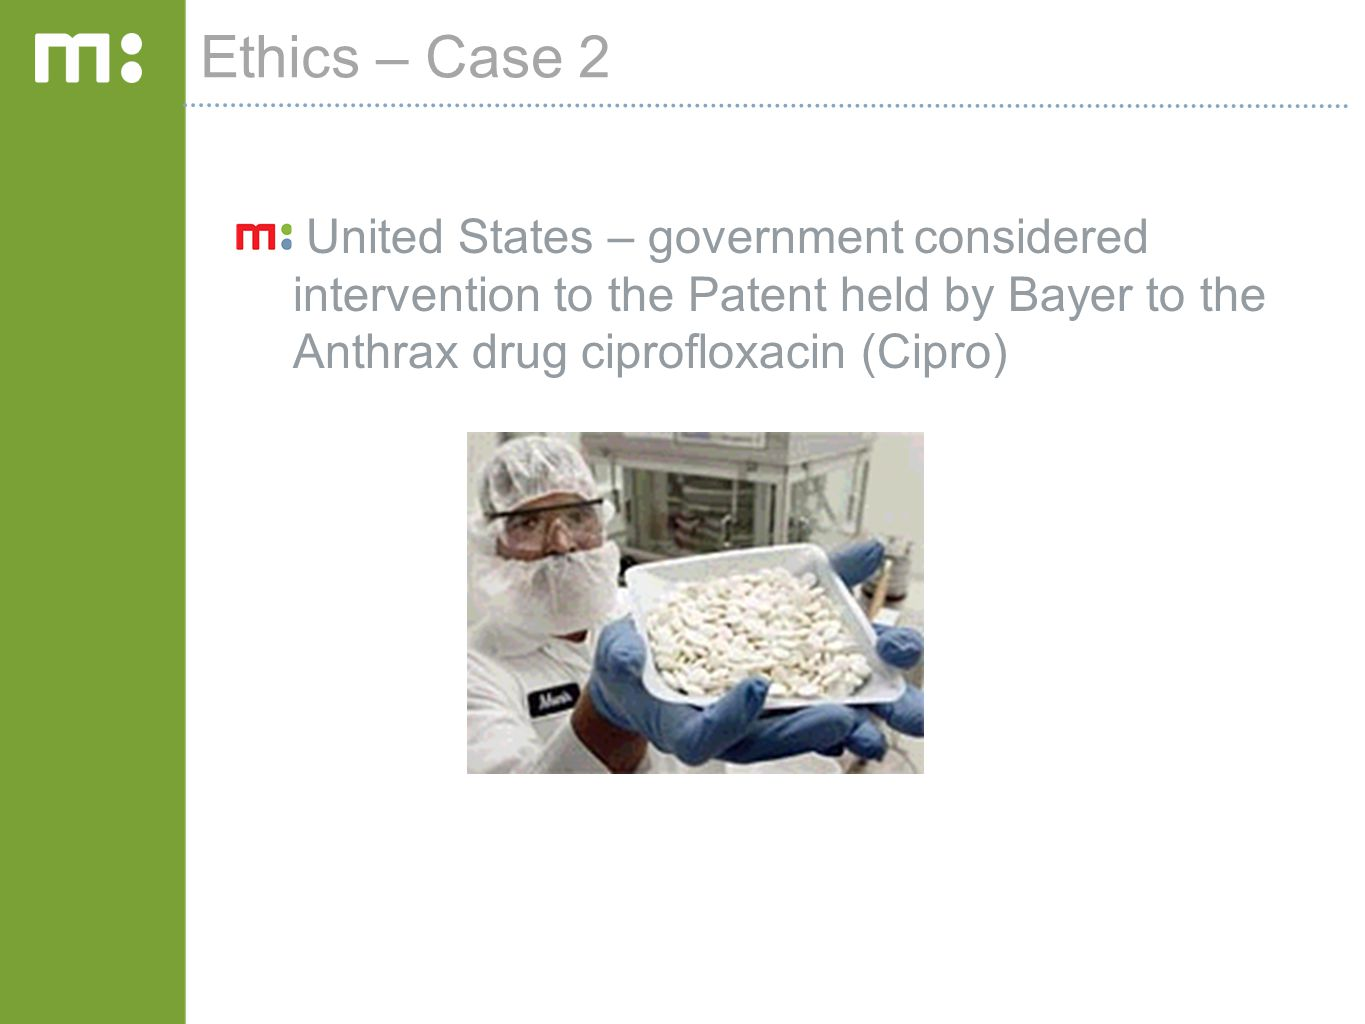 Ethics – Case 2 United States – government considered intervention to the Patent held by Bayer to the Anthrax drug ciprofloxacin (Cipro)